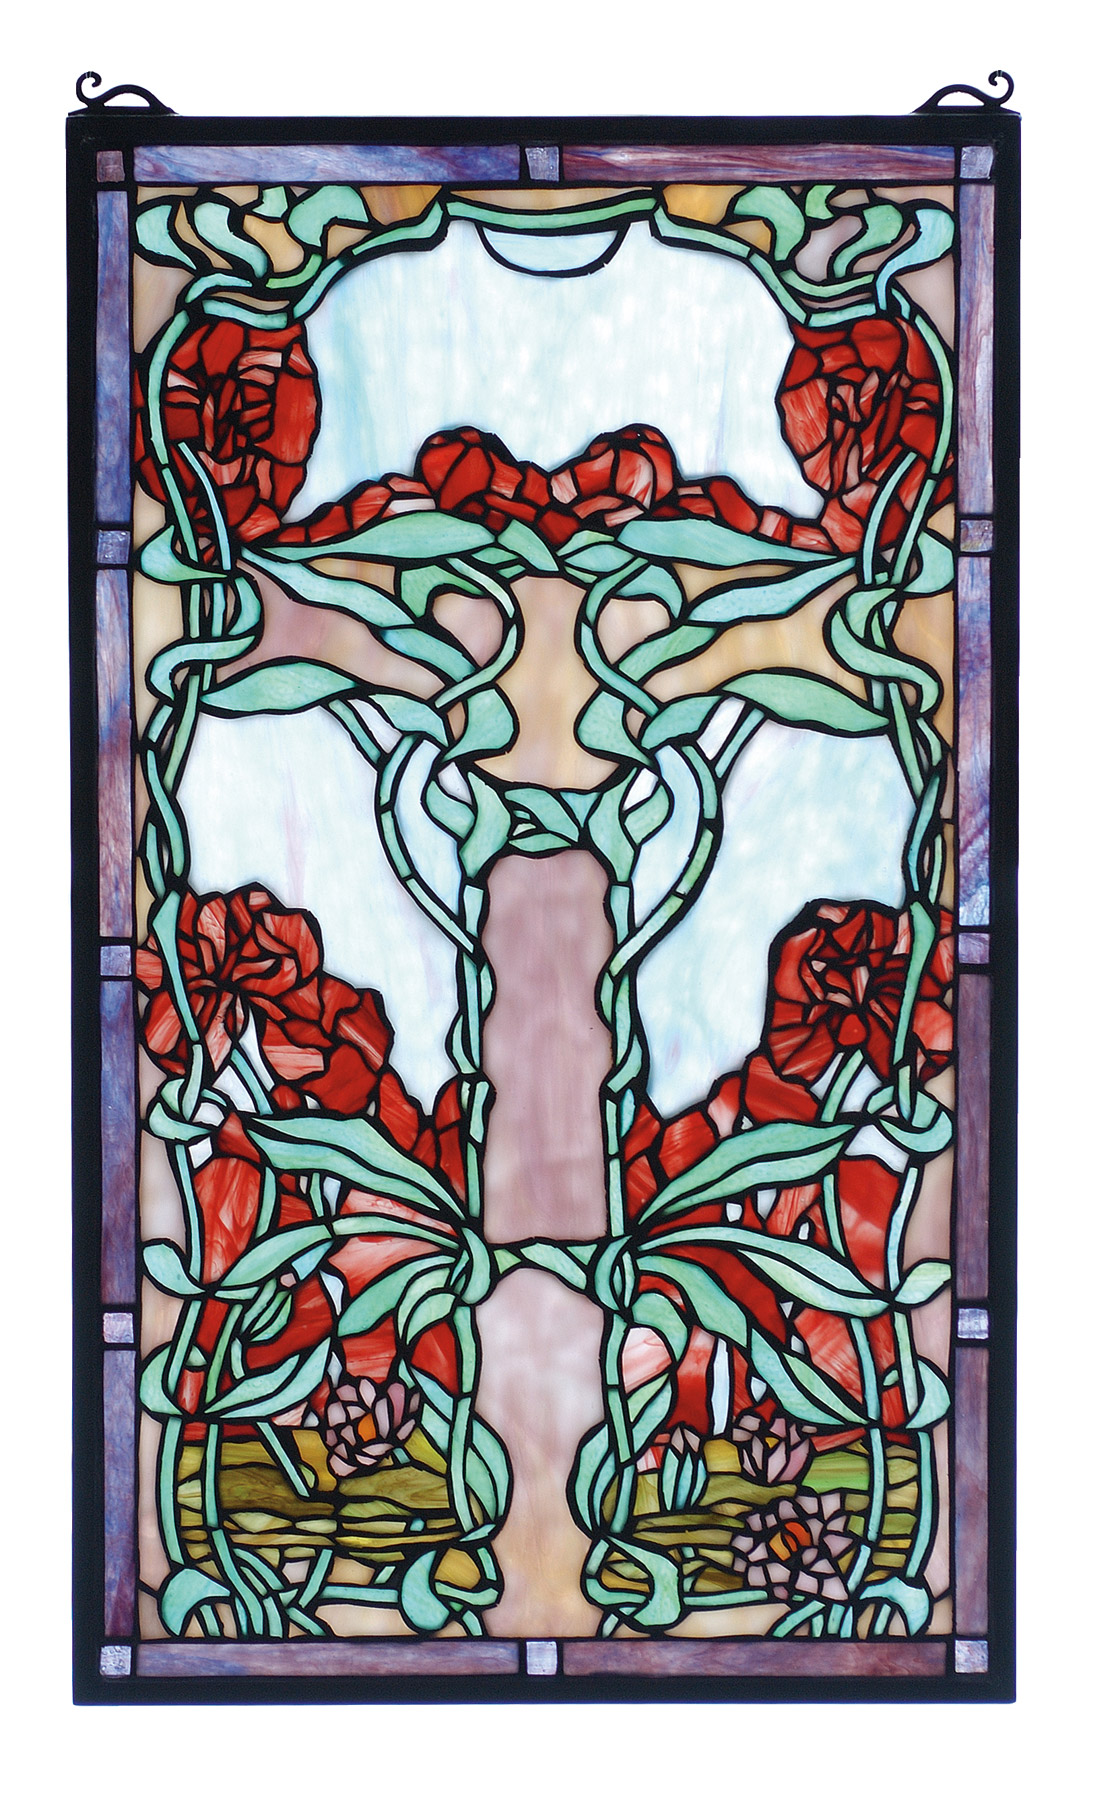 Meyda 65711 Tiffany Nouveau Waterlily Stained Glass Window